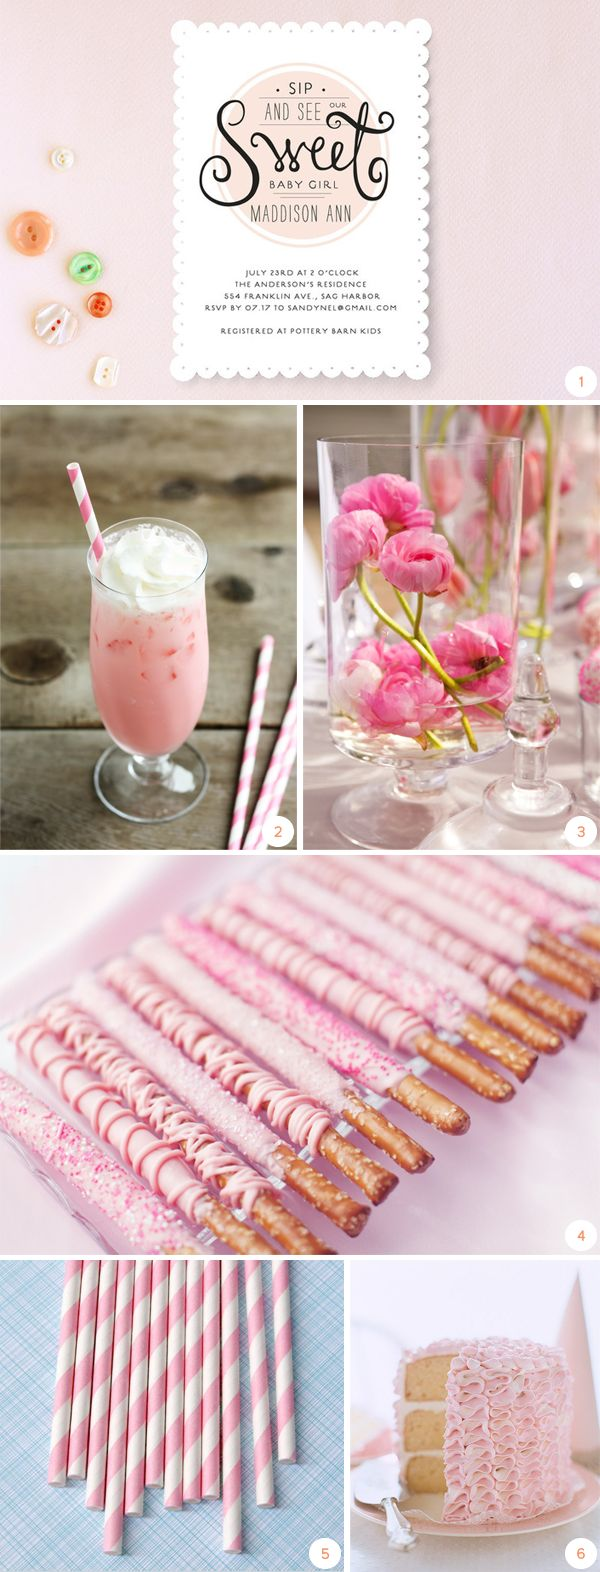 DIYEYE CANDYSHOW & TELLTIS THE SEASONWE HEART DESIGNMINTED COMMUNITY 22 ITALIAN CREAM SODA SIP AND SEE Written by Melissa Bahen     Find more of Melissa on her blog.  No comments SHARE THIS POST:  WRITTEN BY: MELISSABAHEN  |   CATEGORY: Leave a Comment  NAME (REQUIRED) EMAIL (REQUIRED) URL  FROM MINTED. A NEW KIND OF SHOP BUILT AROUND ARTISTS. FOLLOW ALONG!   INSTAGRAM     Search DIY: NO-SEW VALENTINES TREAT BAGS   OUR ARCHIVES  FEBRUARY 2015 JANUARY 2015 DECEMBER 2014 NOVEMBER 2014 SEE MORE…